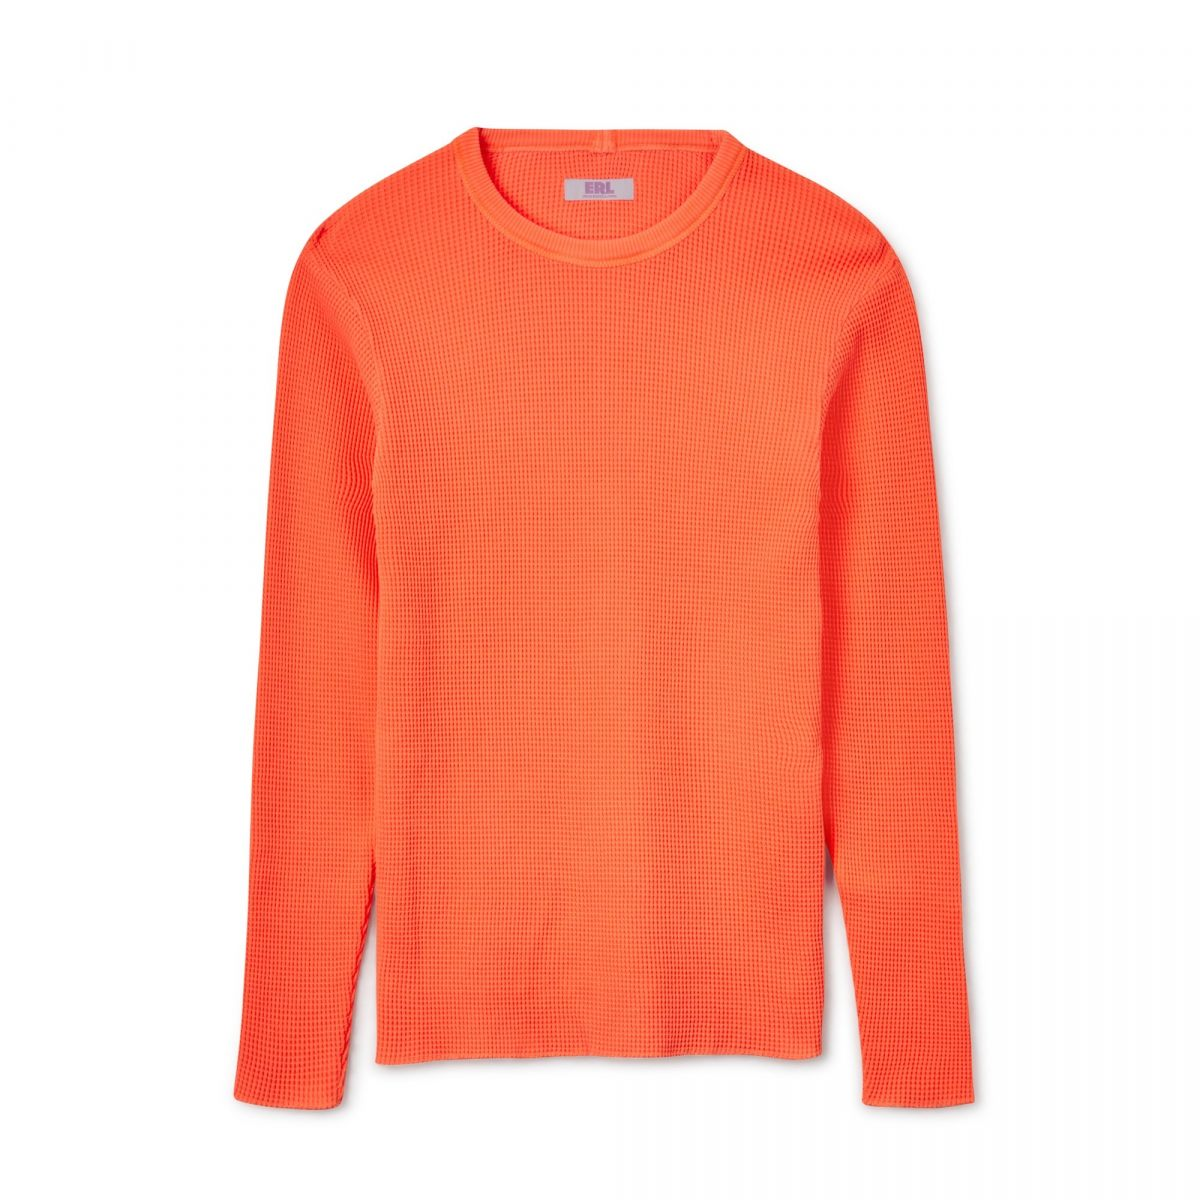 Erl Waffle Long Sleeve Jersey (Neon Orange) by Dsmny E-Shop, available on doverstreetmarket.com Kylie Jenner Top Exact Product